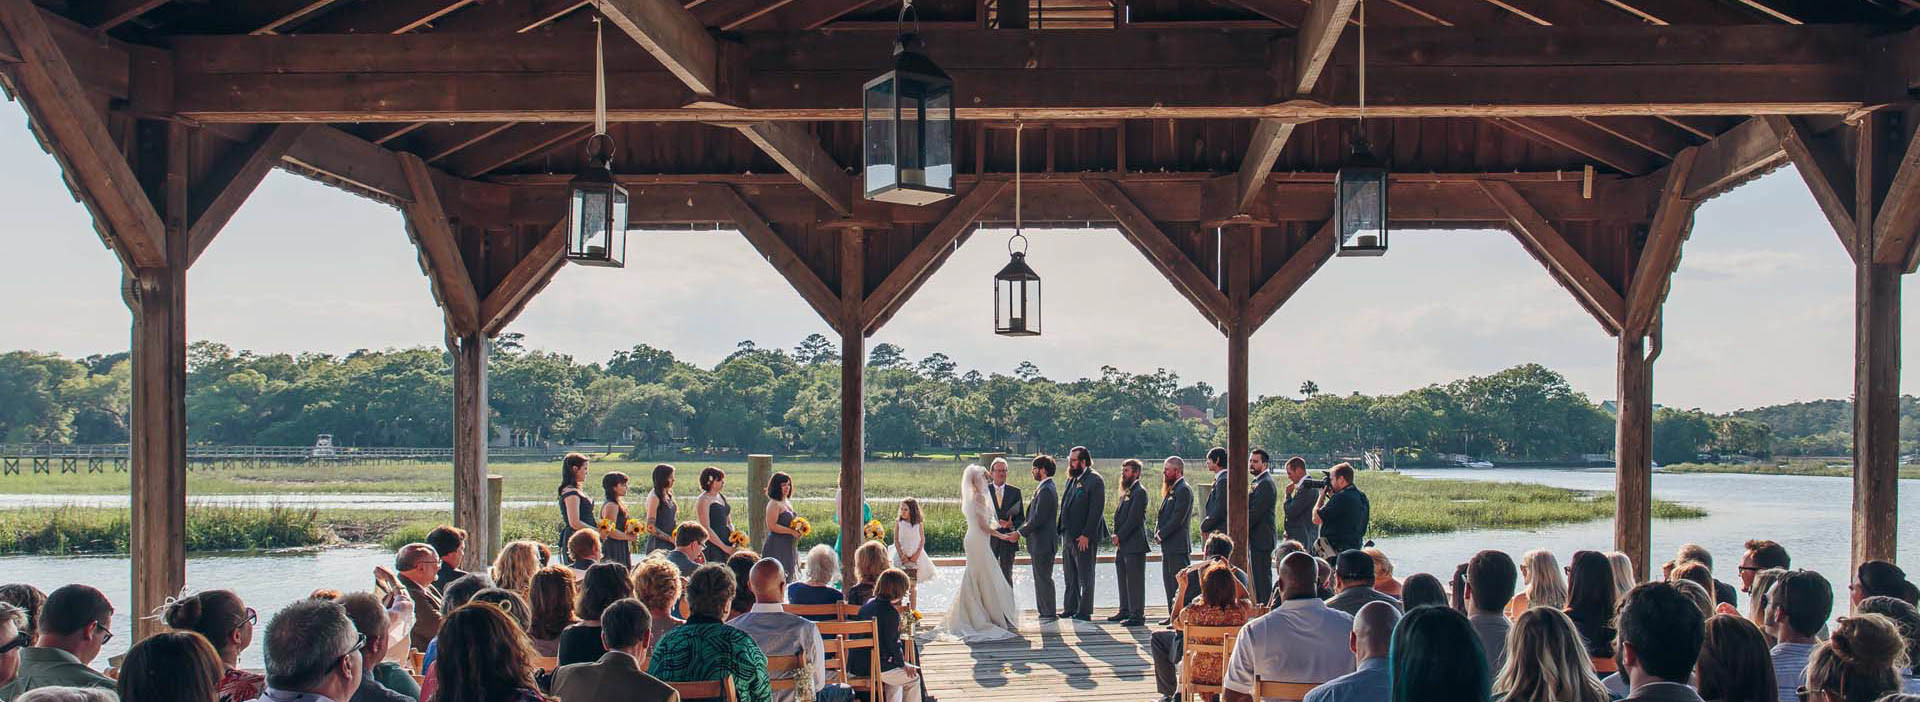 Ceremony at Boone Hall Plantation Cotton Dock